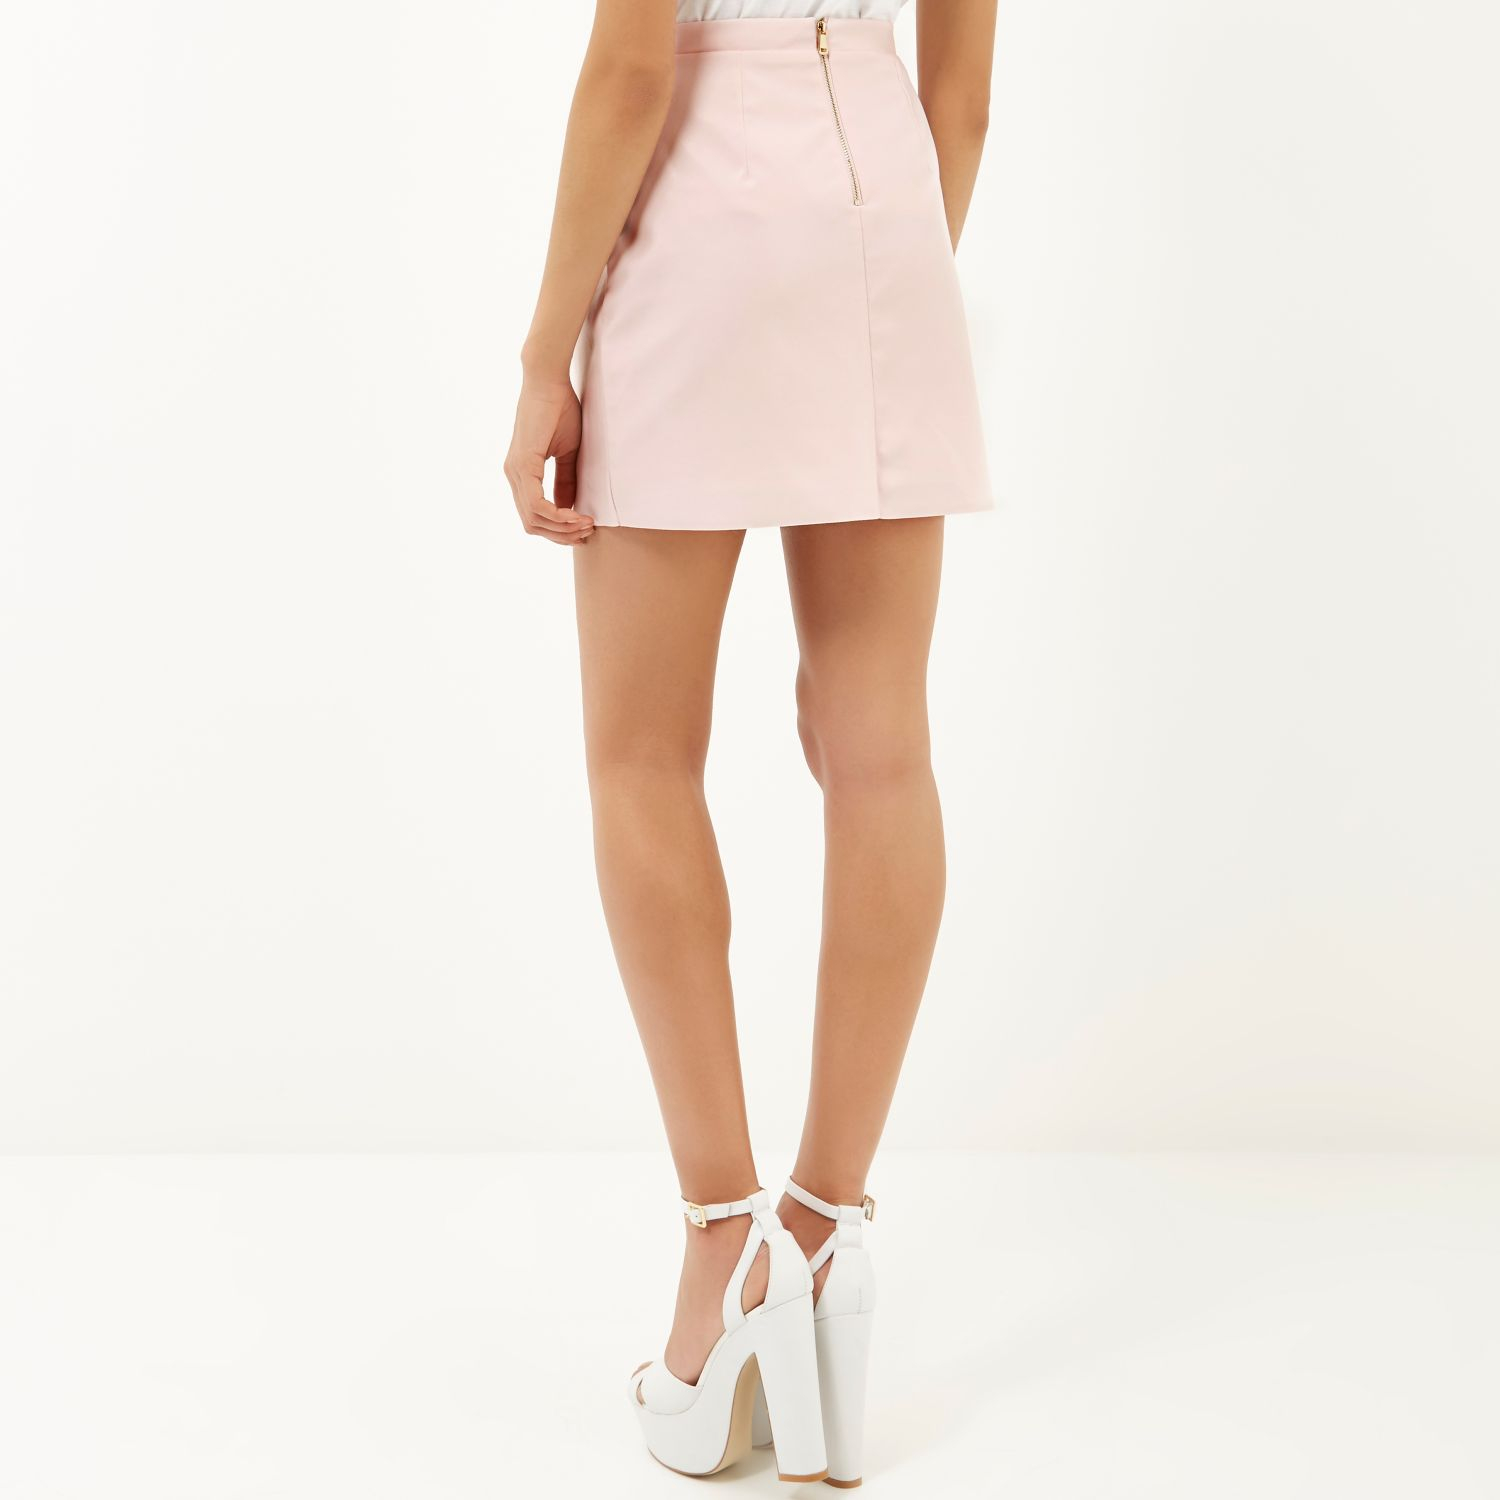 River island Light Pink Leather-look A-line Skirt in Blue | Lyst